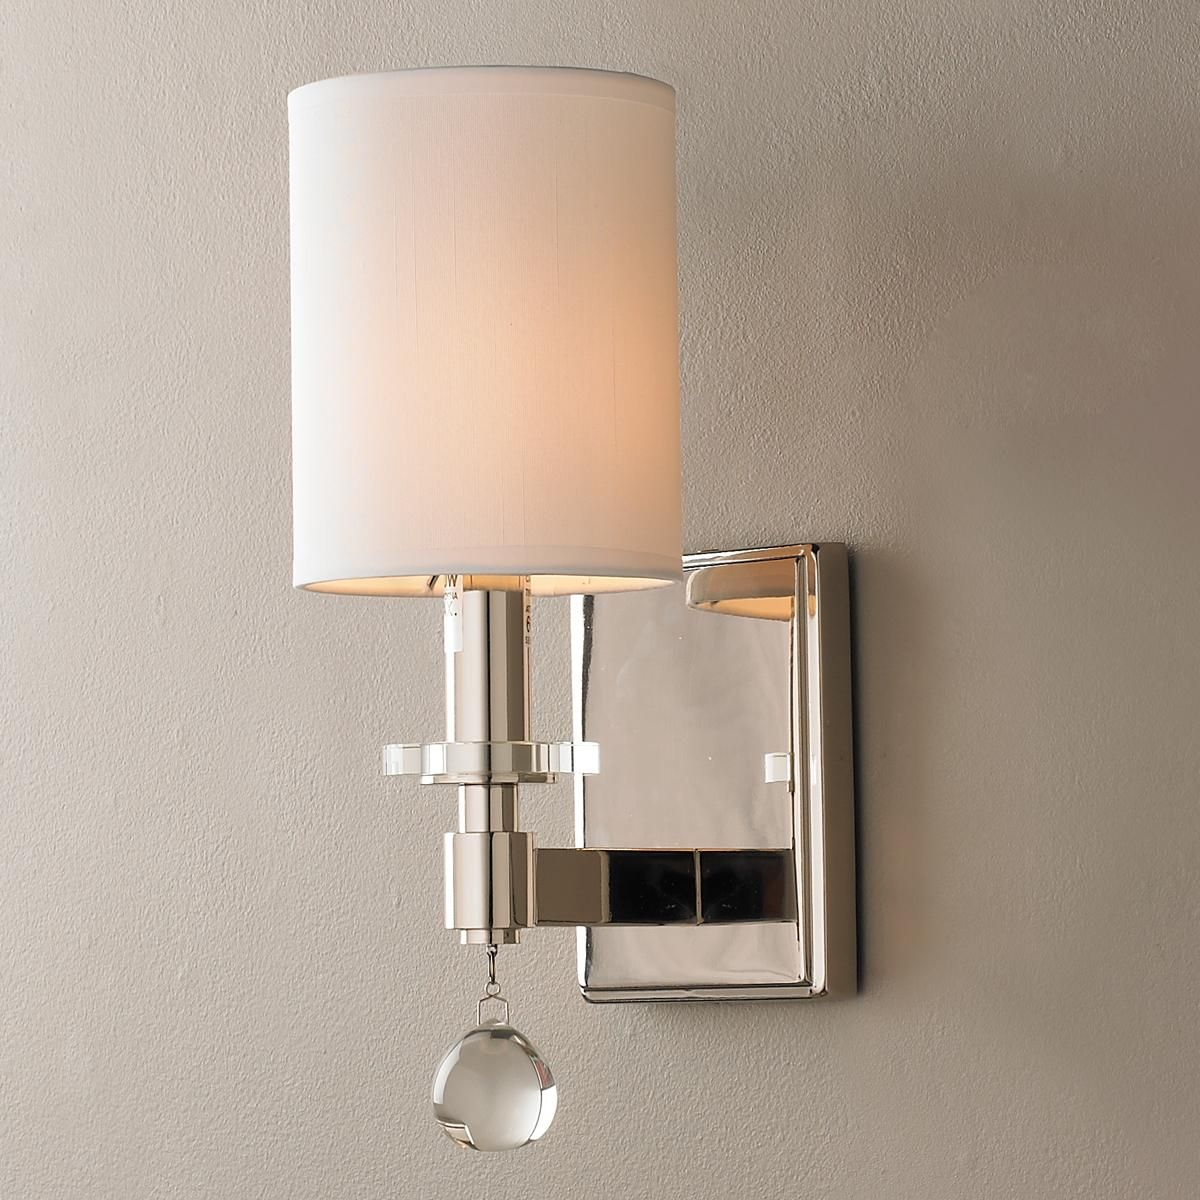 Modern crystal glass drop sconce modern sconces nickel finish modern crystal glass drop sconce amipublicfo Gallery